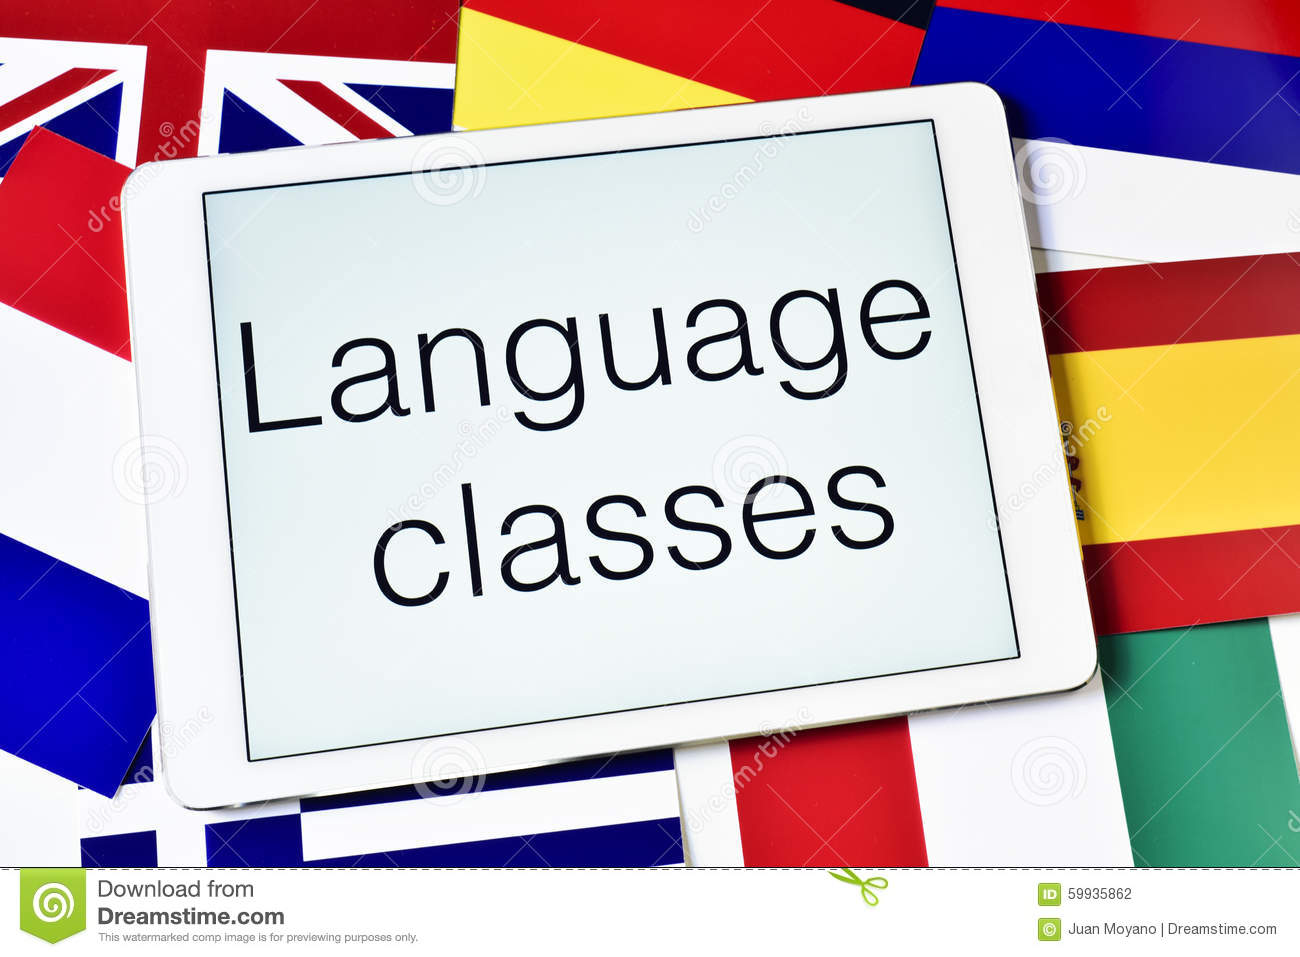 Mongolian Language Classes in Noida | Mongolian Language Course in Noida